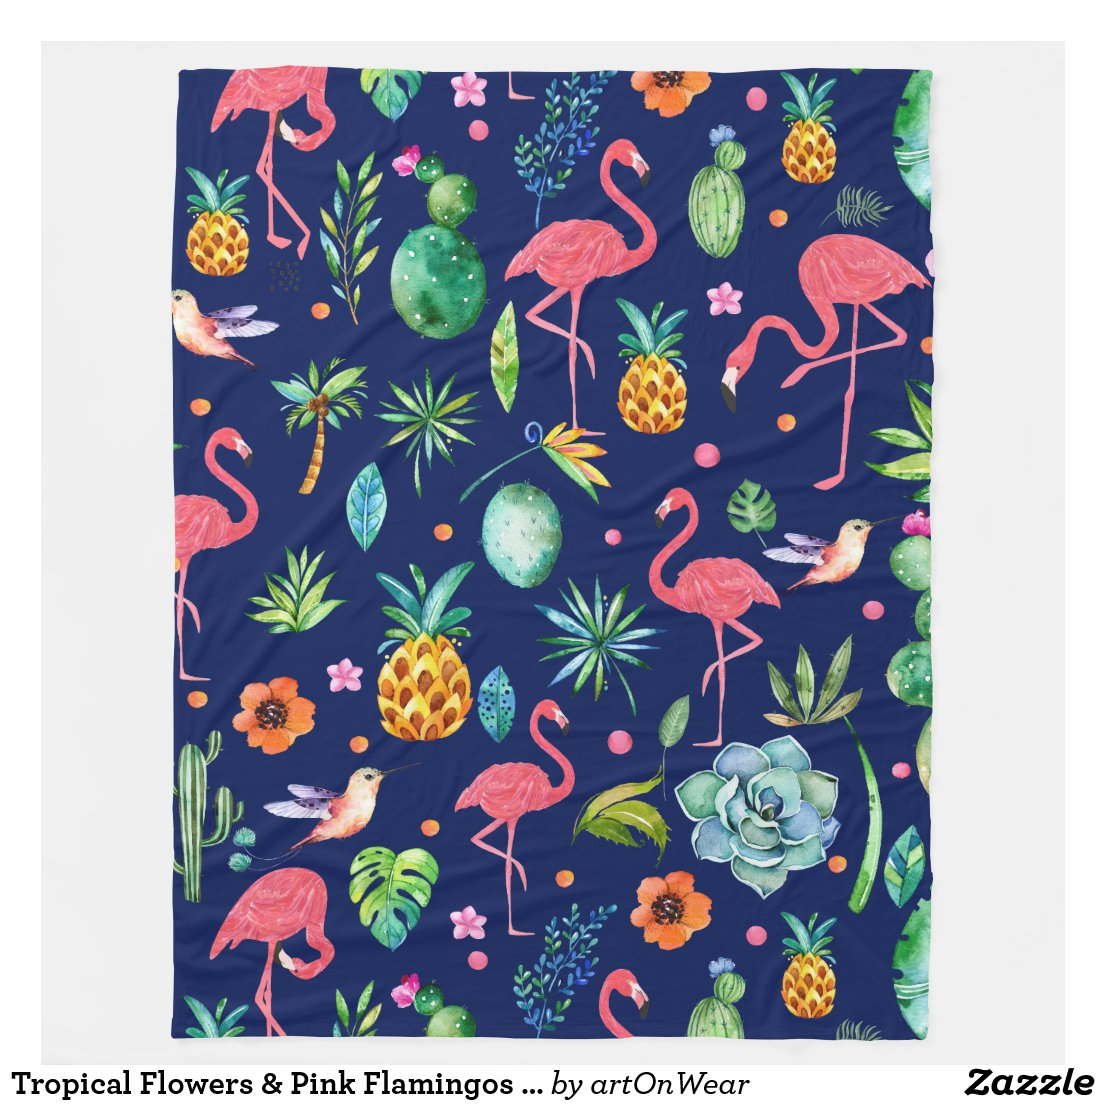 Tropical Flowers & Pink Flamingos Illustration